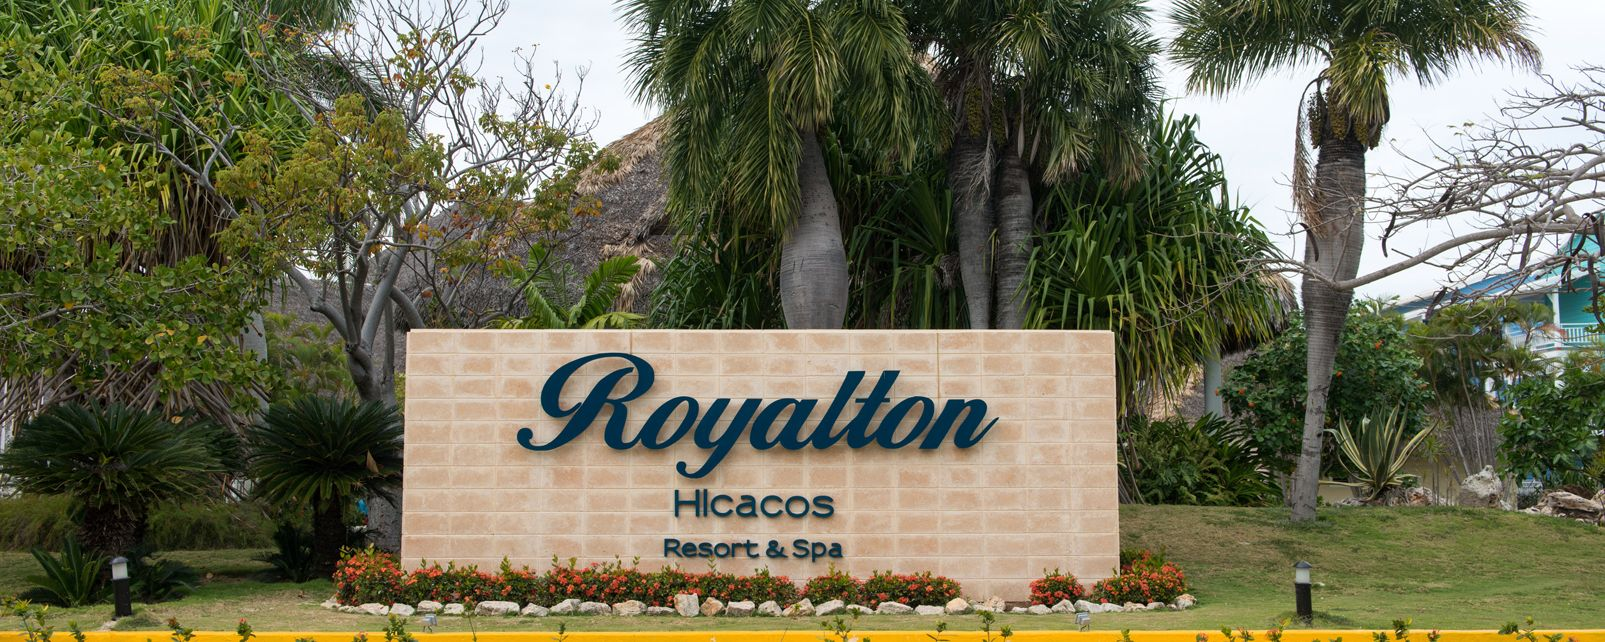 Hotel Royalton Hicacos Varadero Resort & Spa